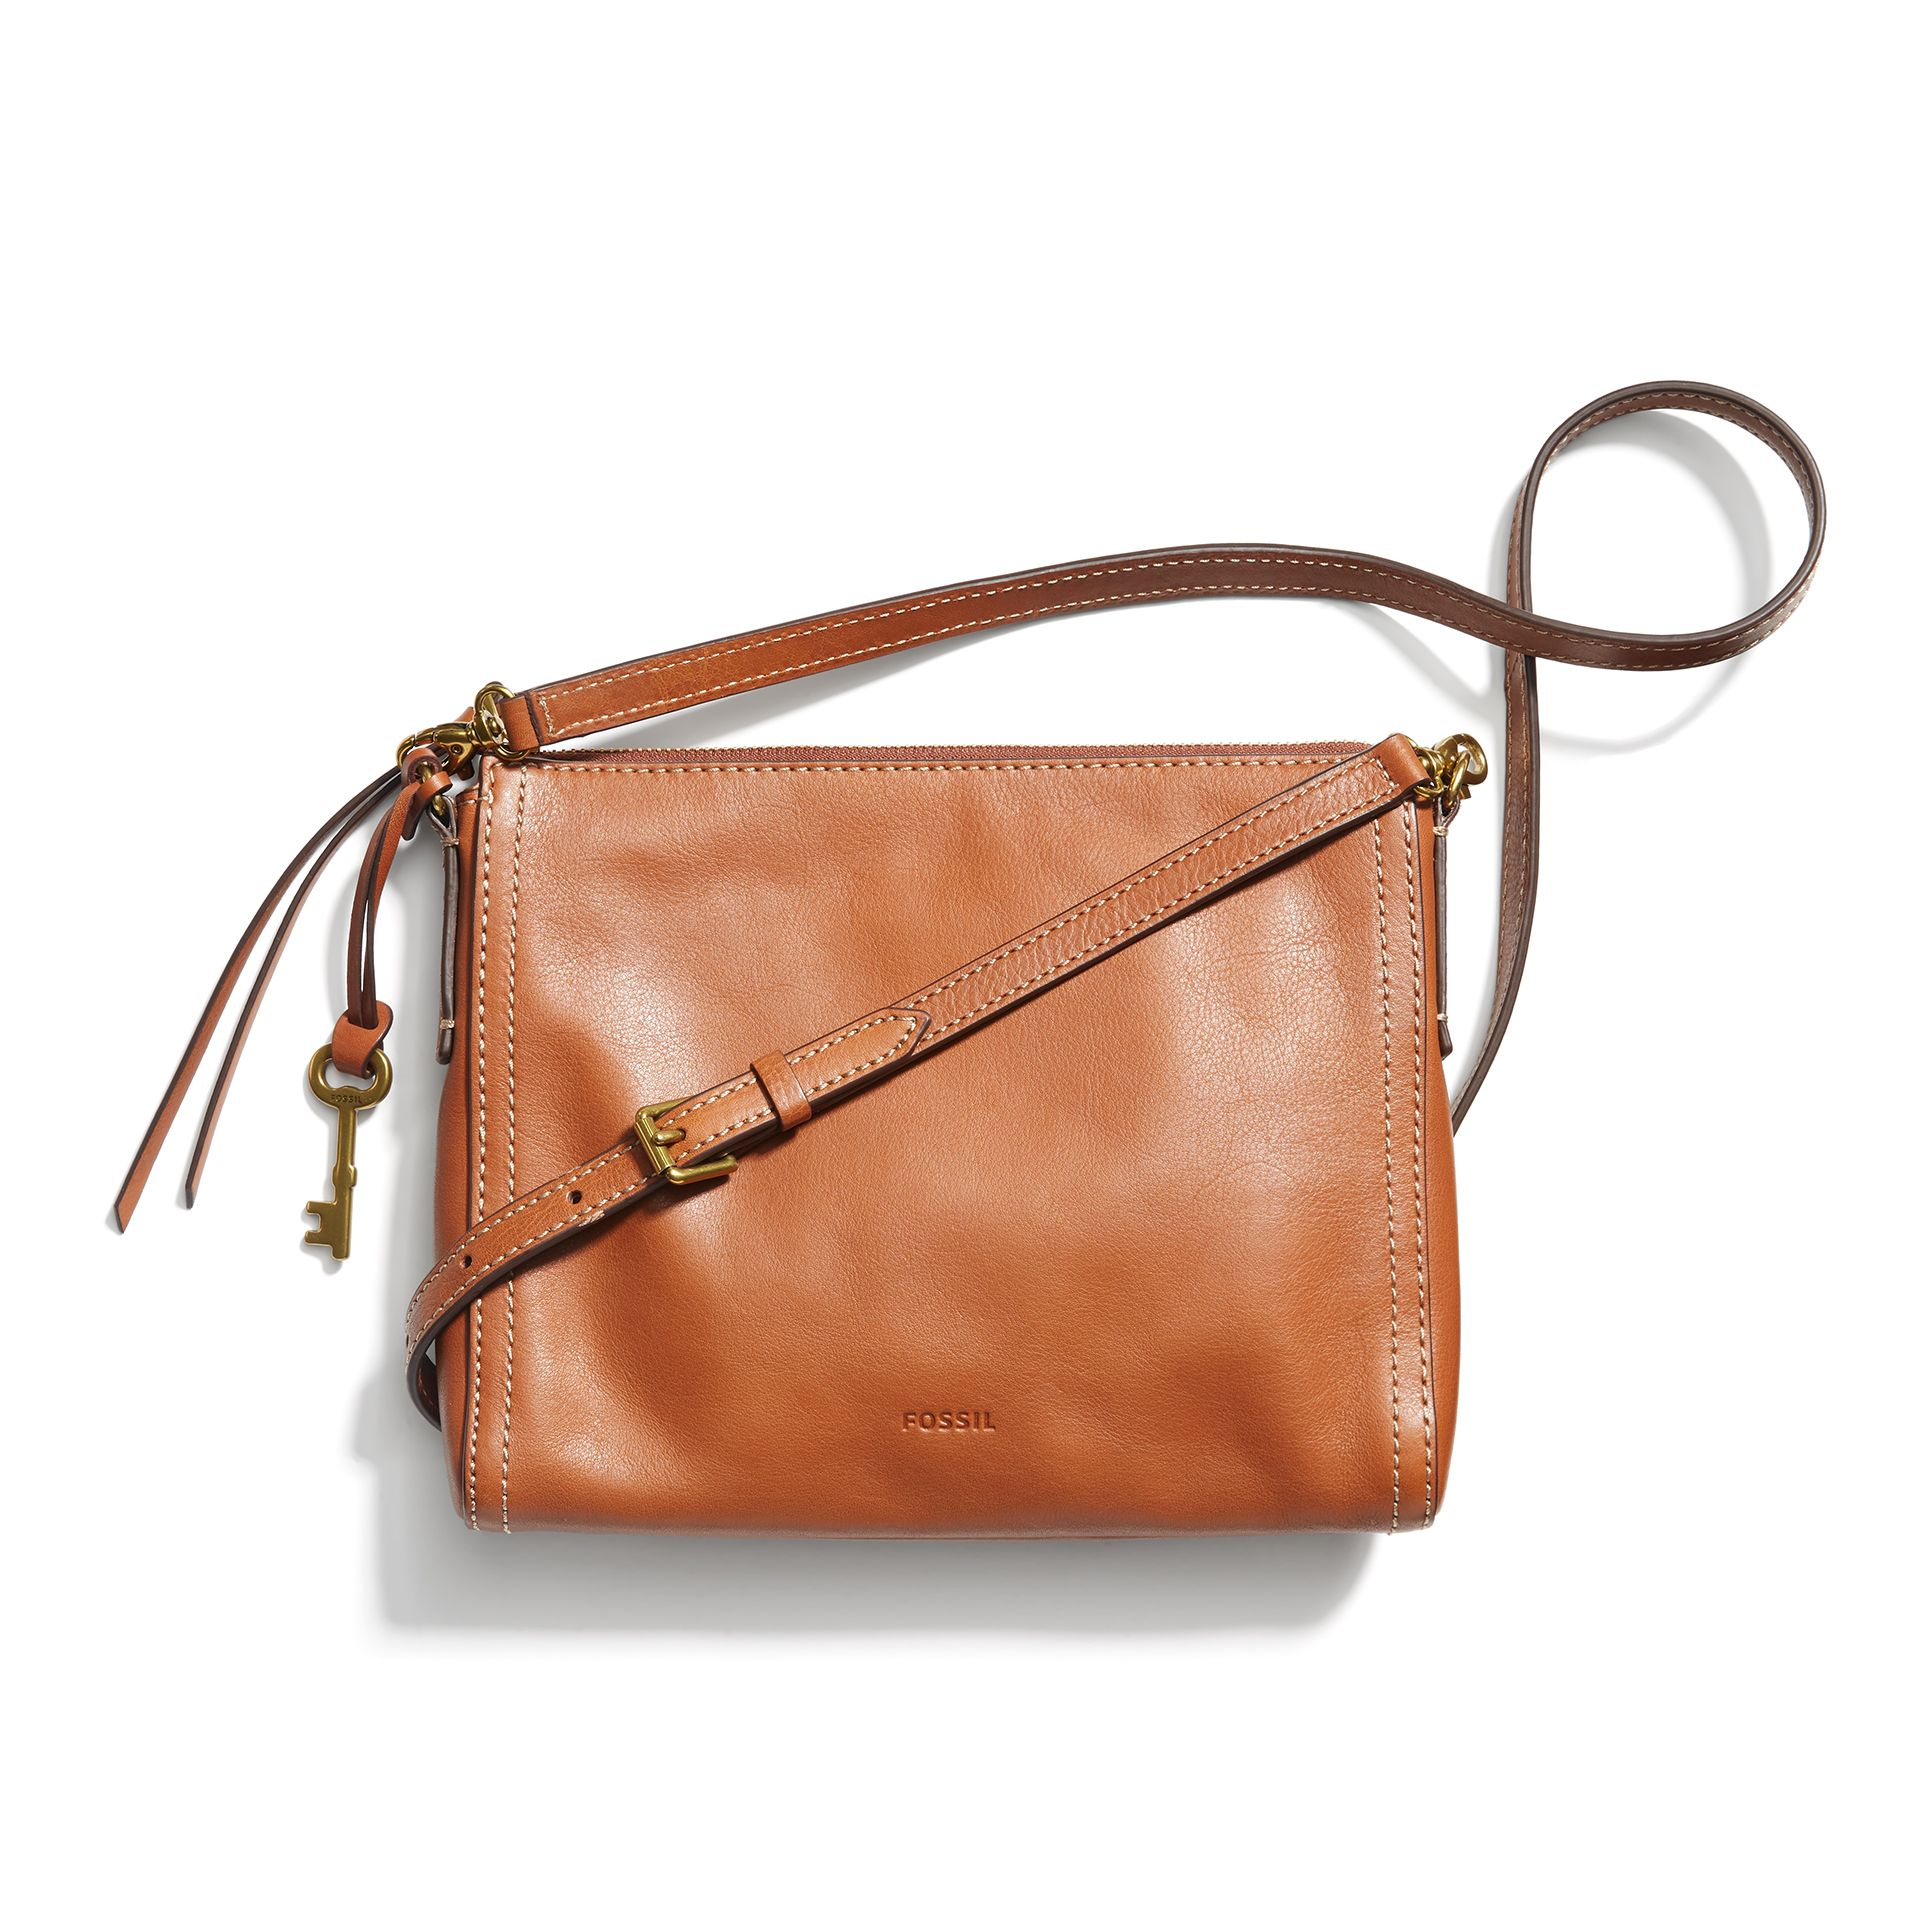 158c39618fdb Stitch Fix Spring Must-Haves  Leather Cross-body Bag